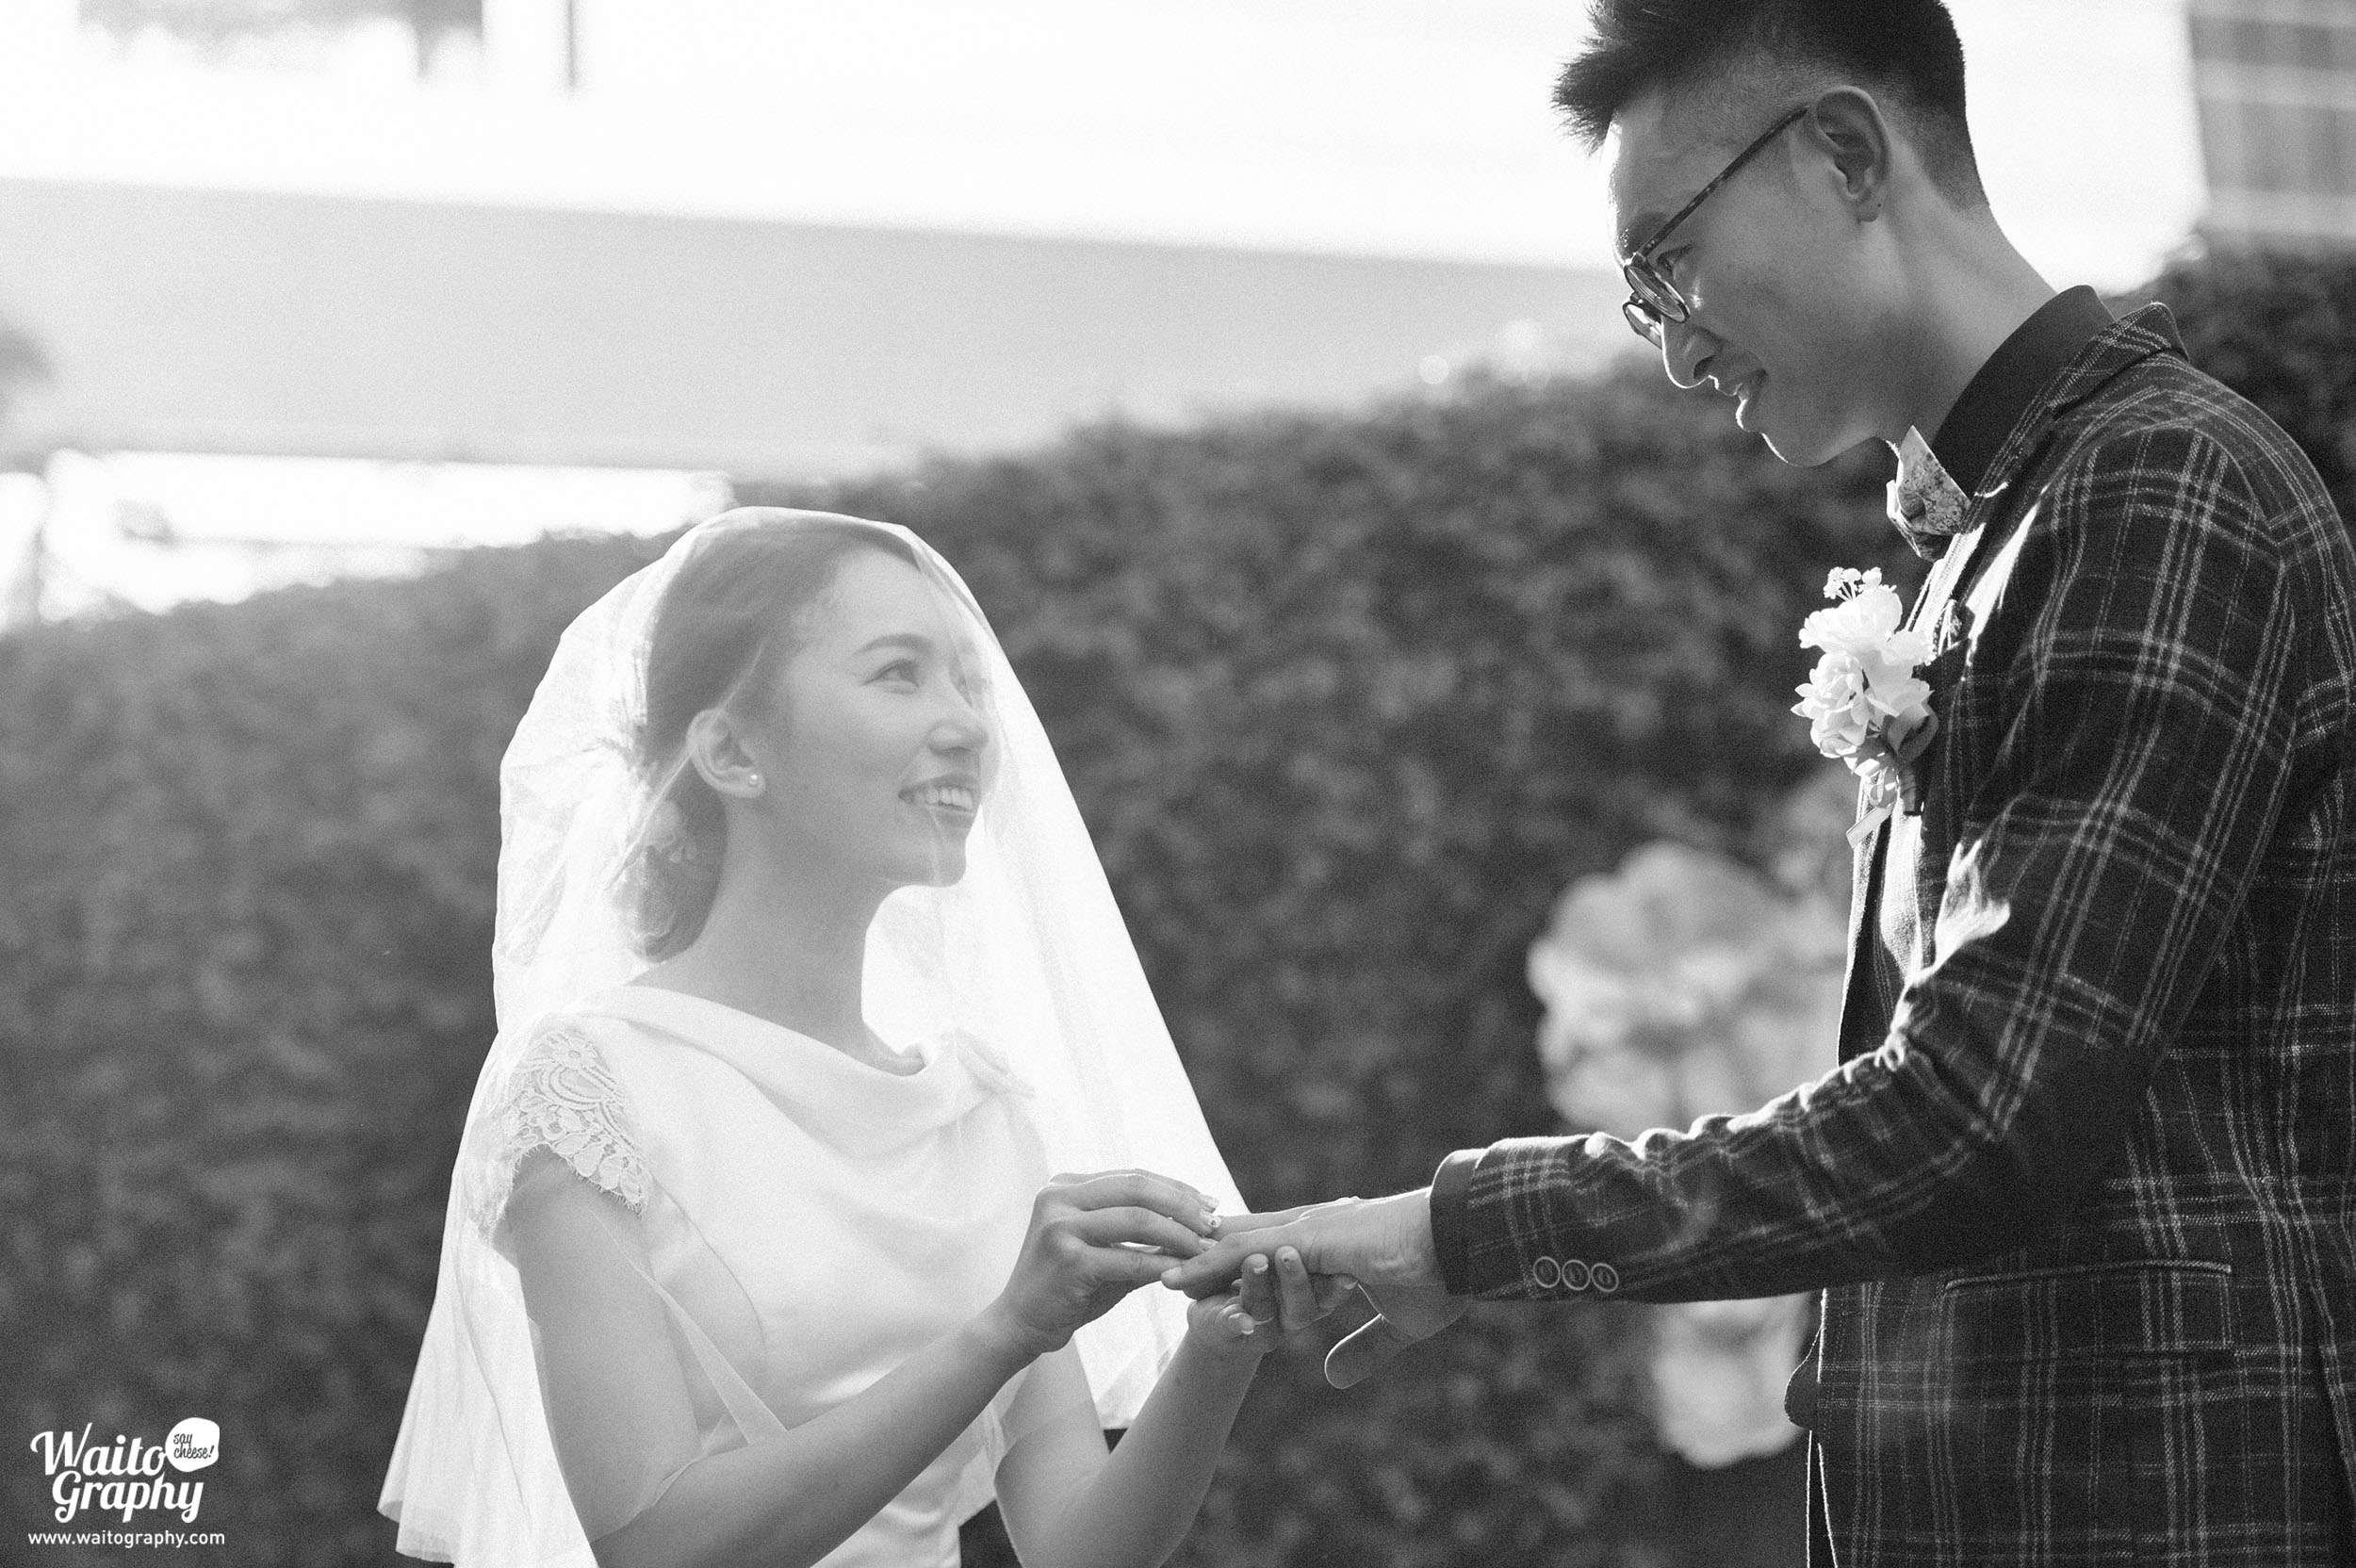 Hong Kong wedding photographer caputuring the touching moment of bride and groom exchanging rings in the wedding at the lawn of zero carbon building HK